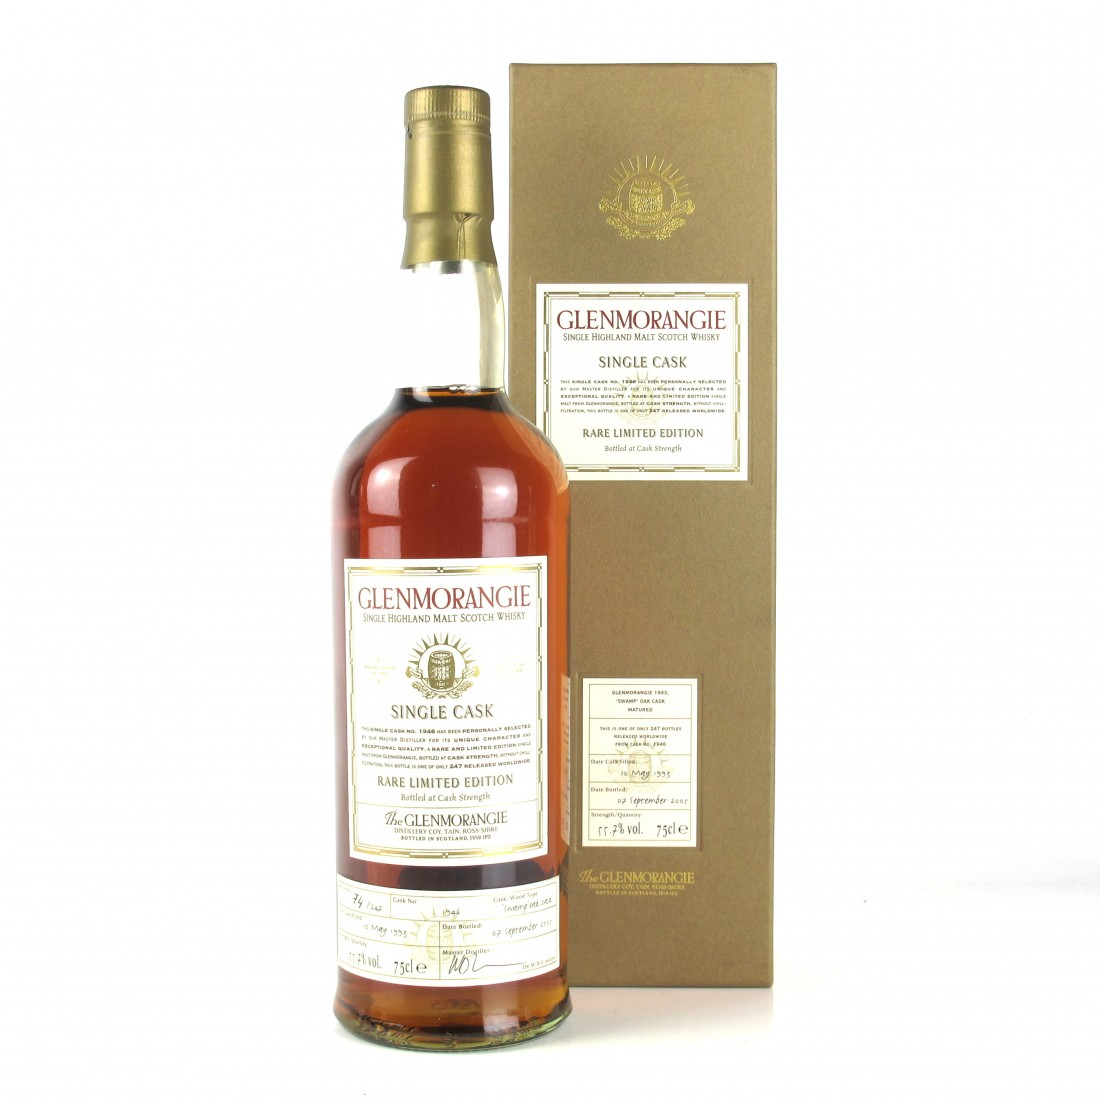 Glenmorangie 1993 Swamp Oak 12 Year Old / Limited Edition 75cl